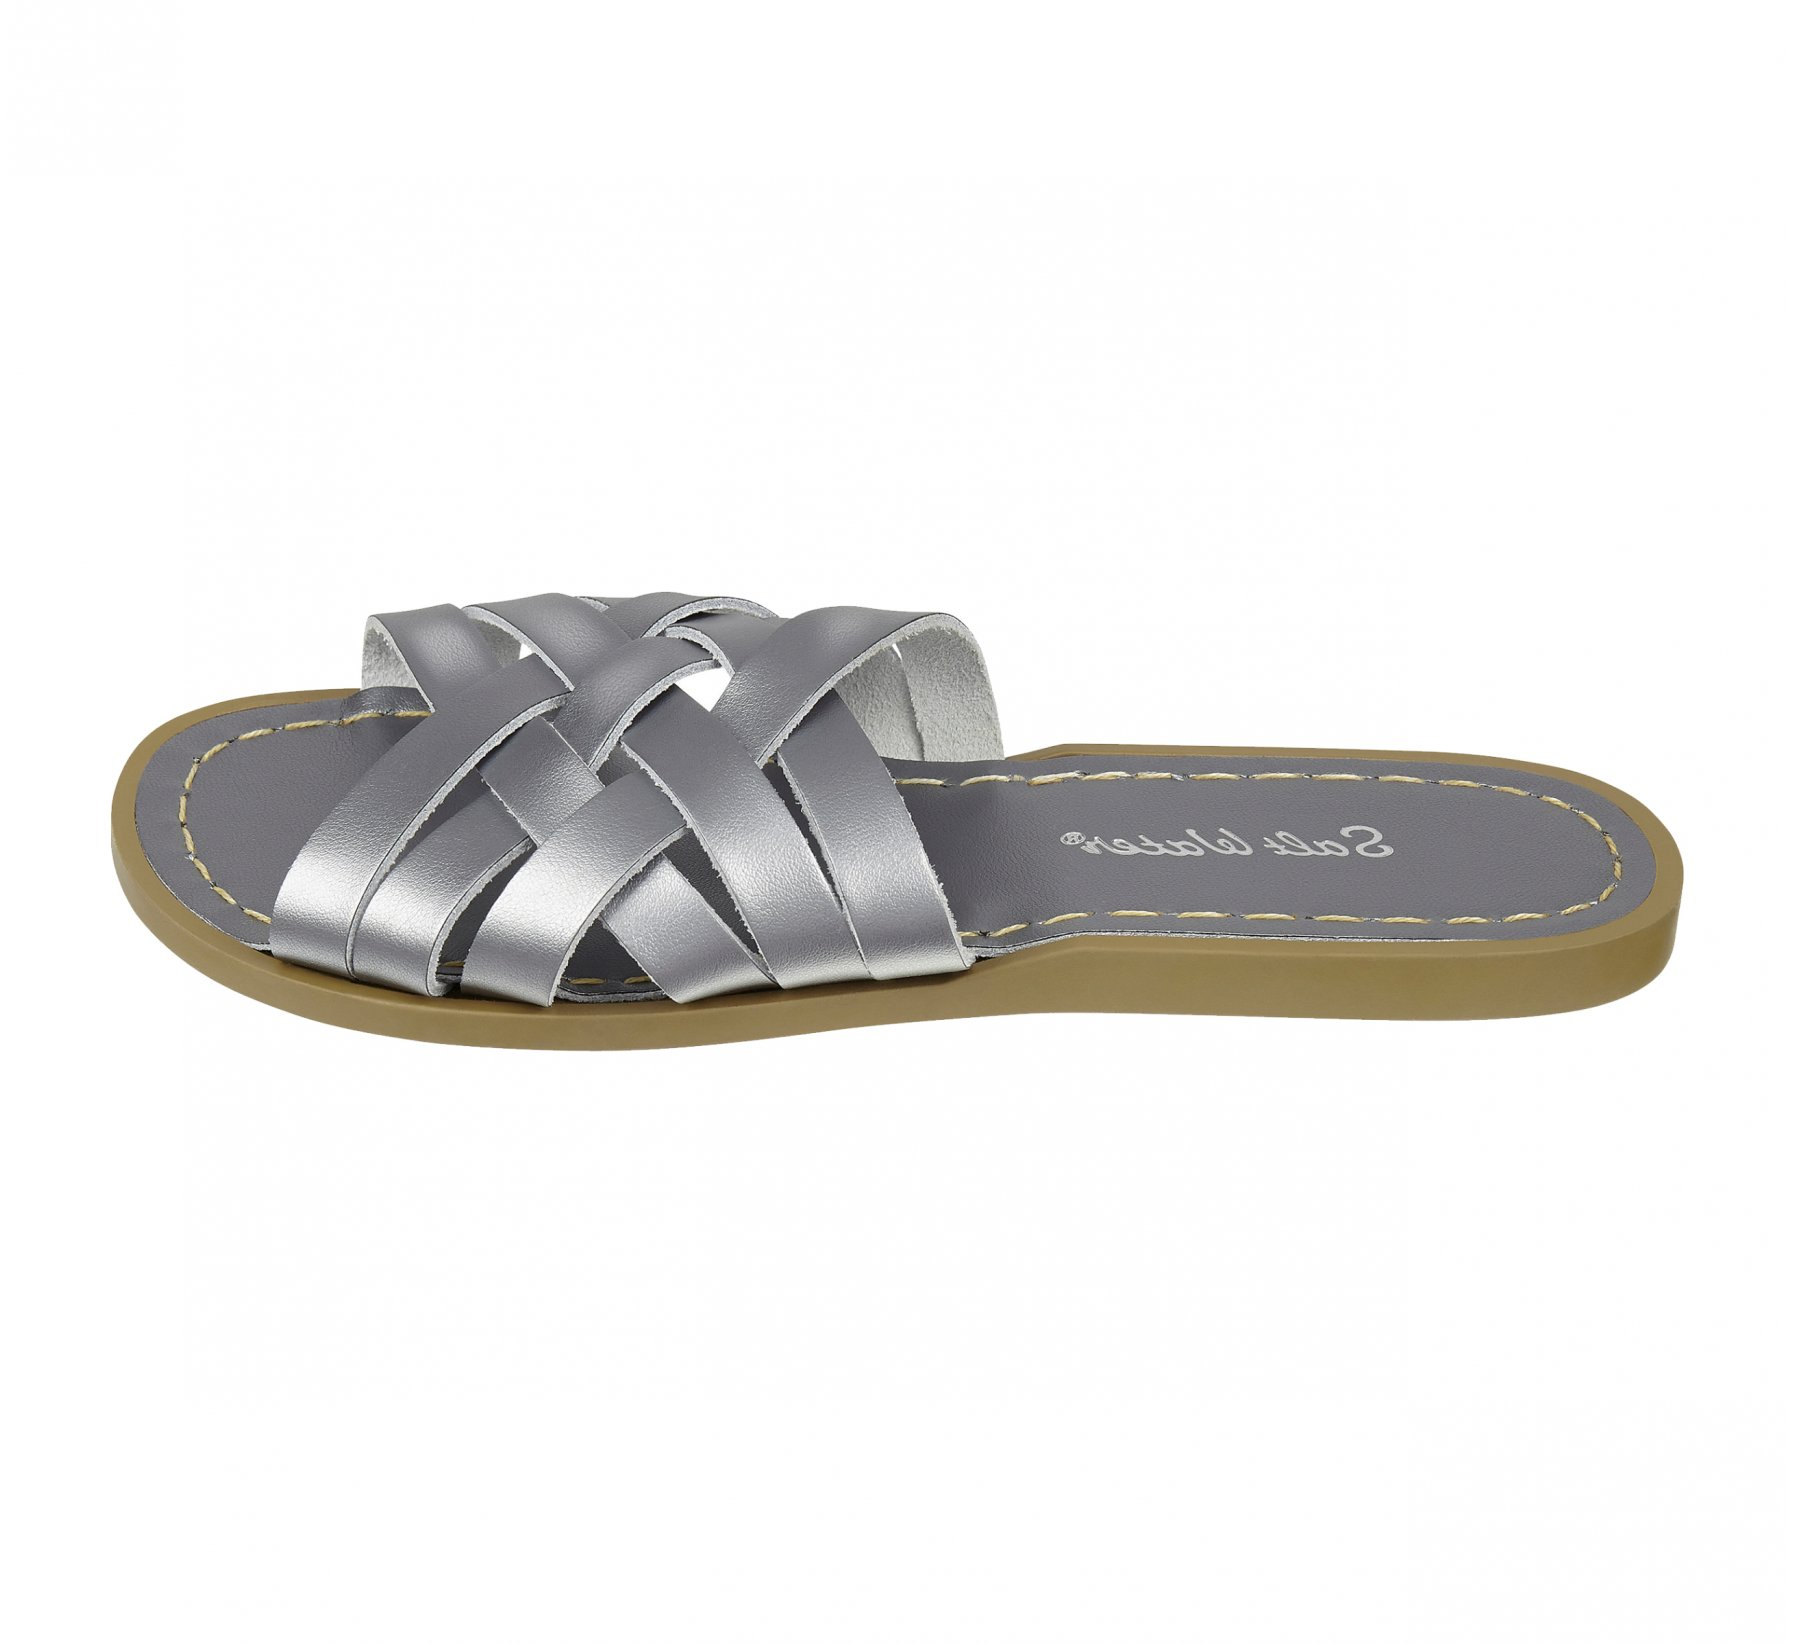 Retro Slide Piuter - Salt Water Sandals